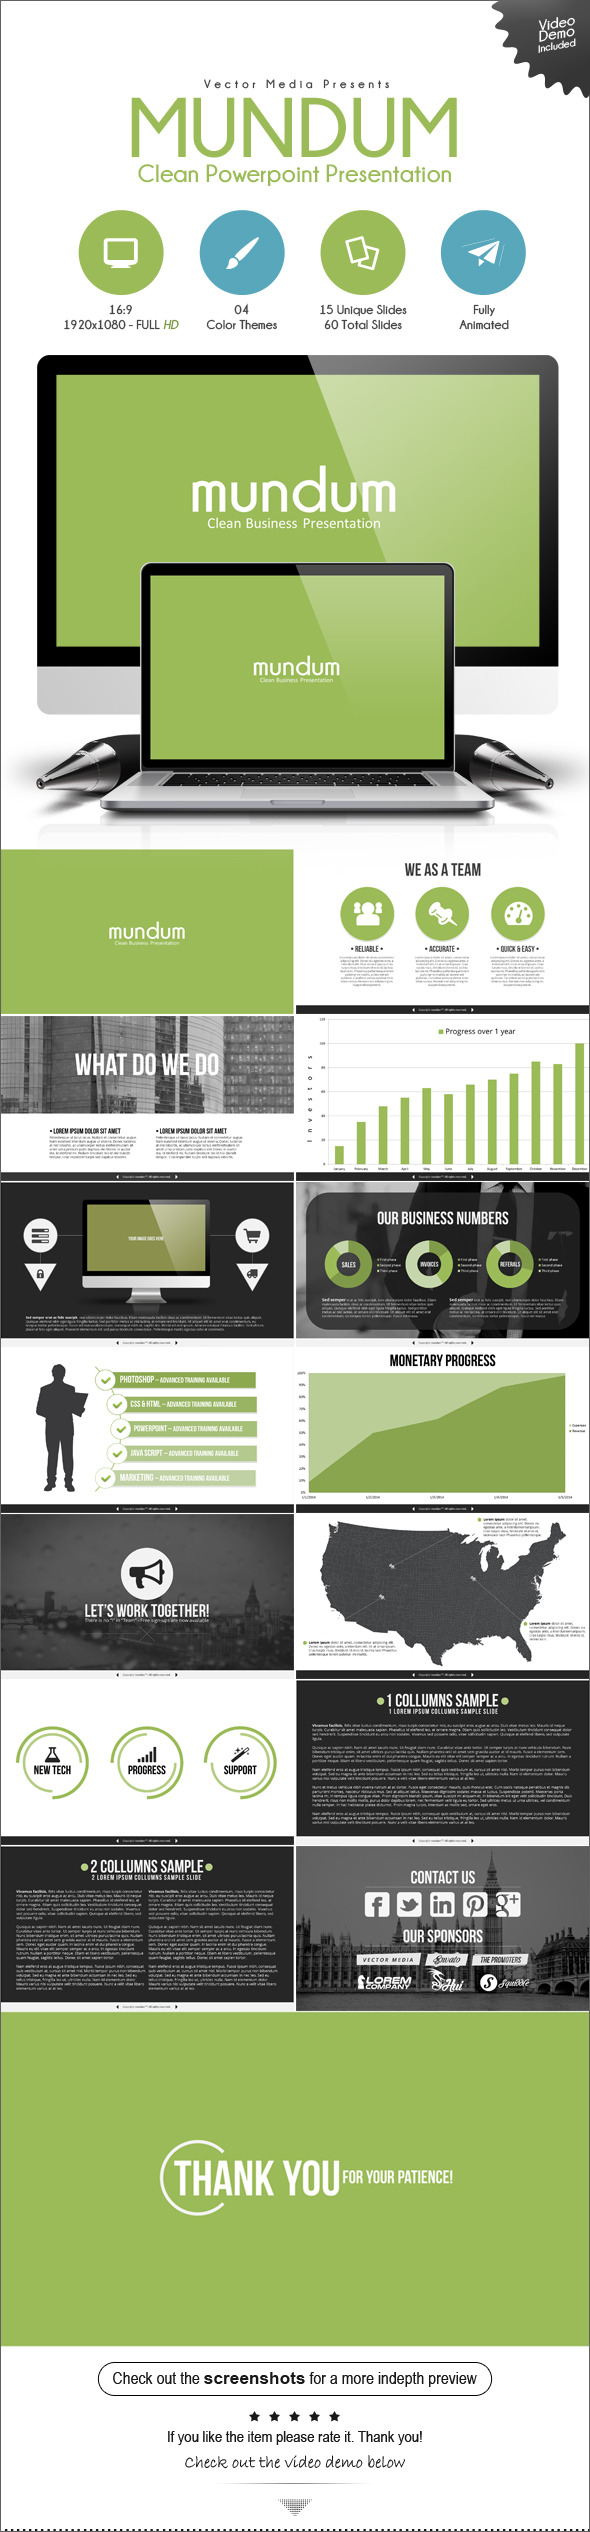 GraphicRiver Mundum Powerpoint Presentation 9487808